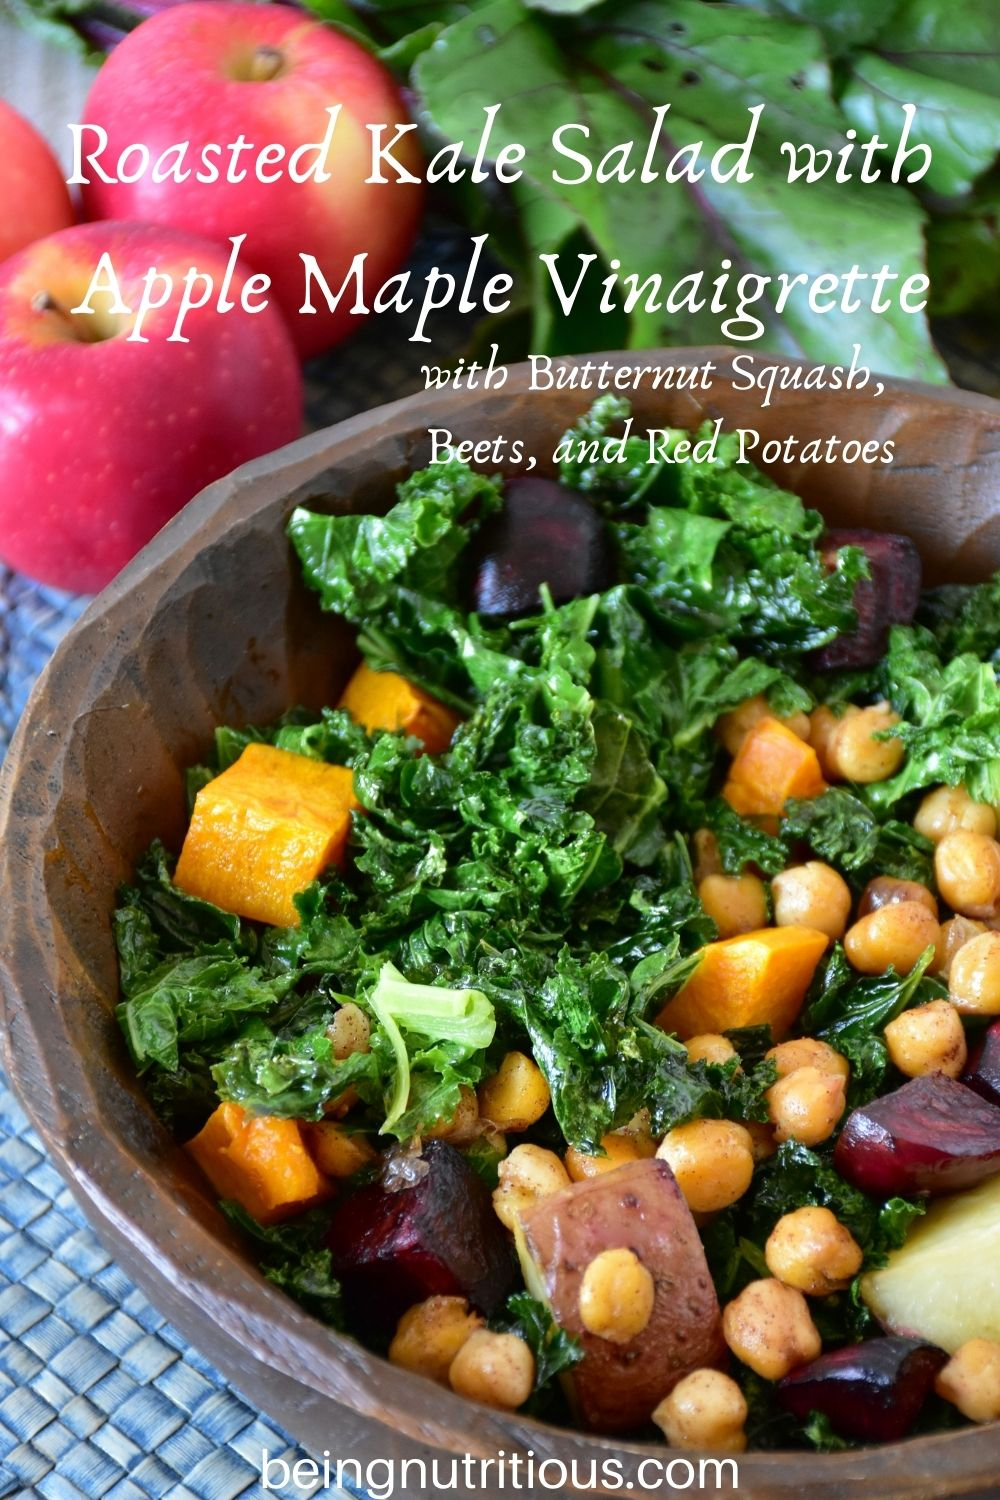 Kale salad in a wooden bowl. Text overlay: Roasted Kale Salad with Apple Maple Vinaigrette, with butternut squash, beets, and red potatoes.